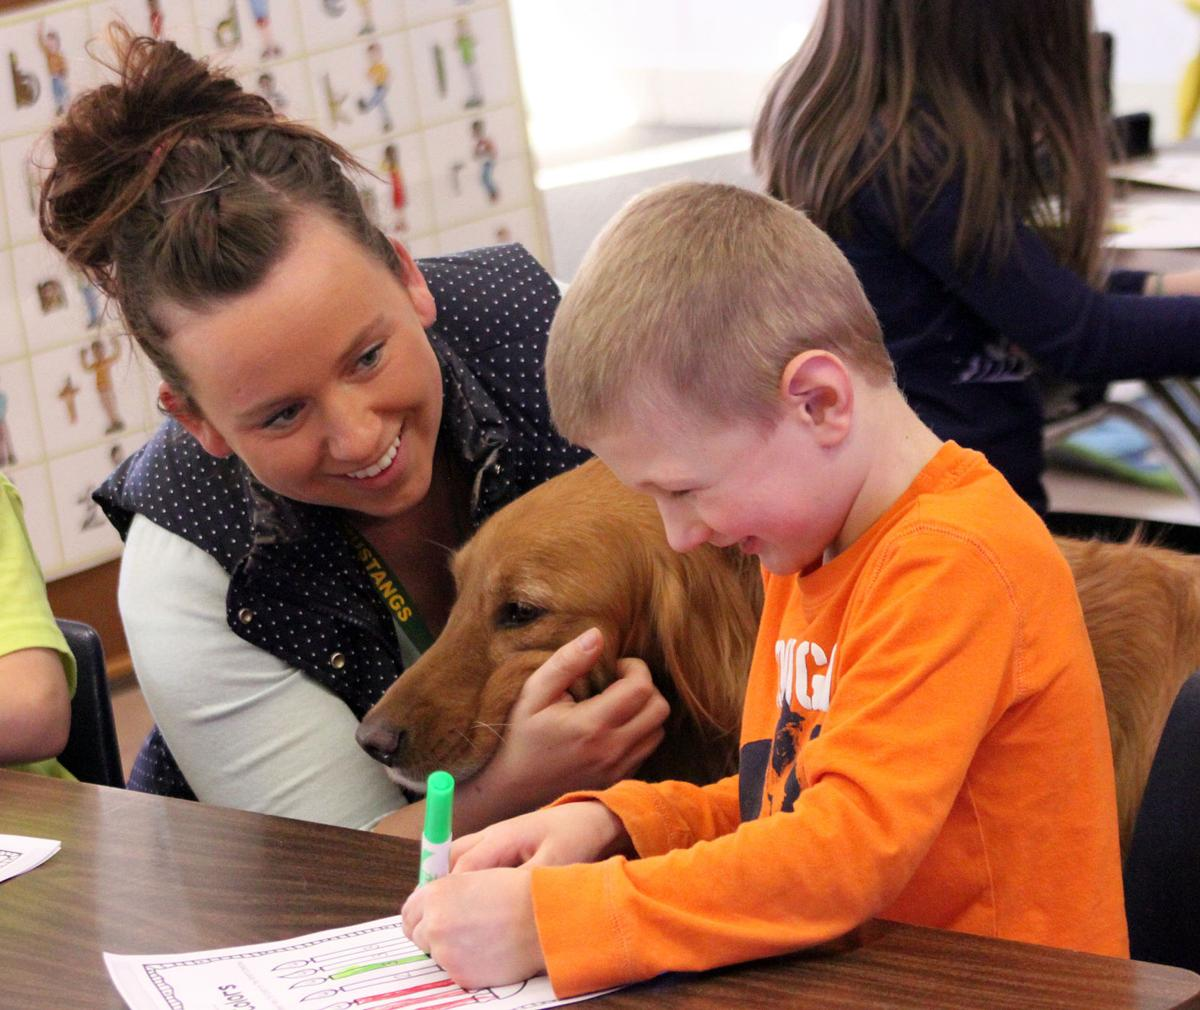 Melrose-Mindoro uses therapy dogs in the classroom